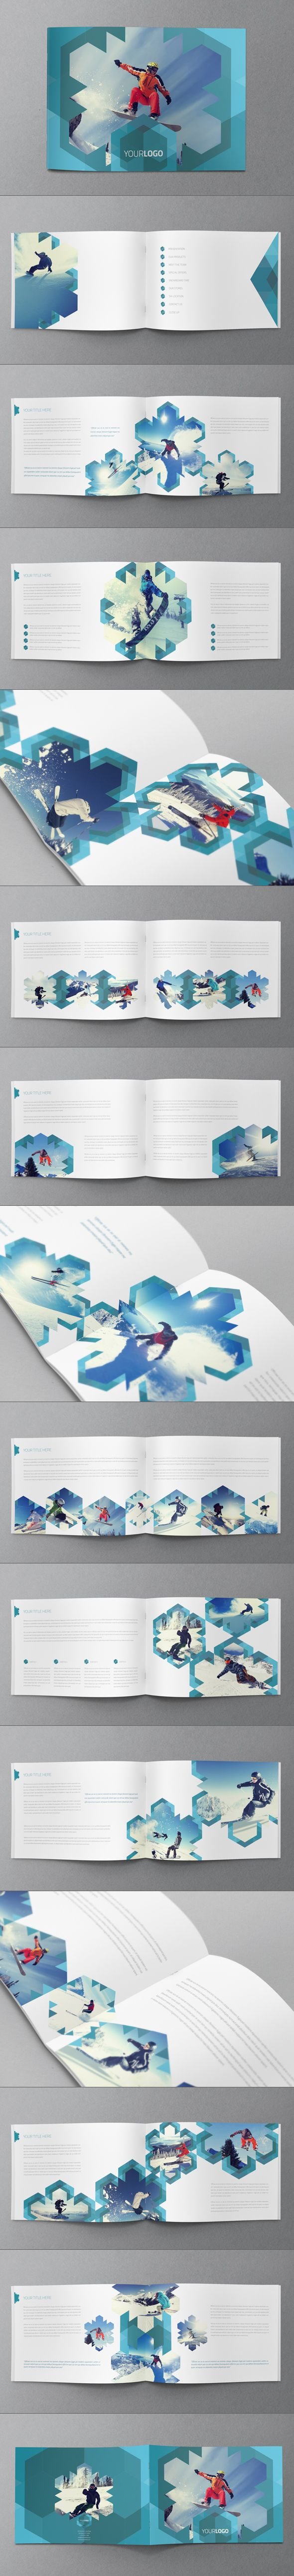 Ski/Snowboard Winter Brochure by Abra Design, via Behance